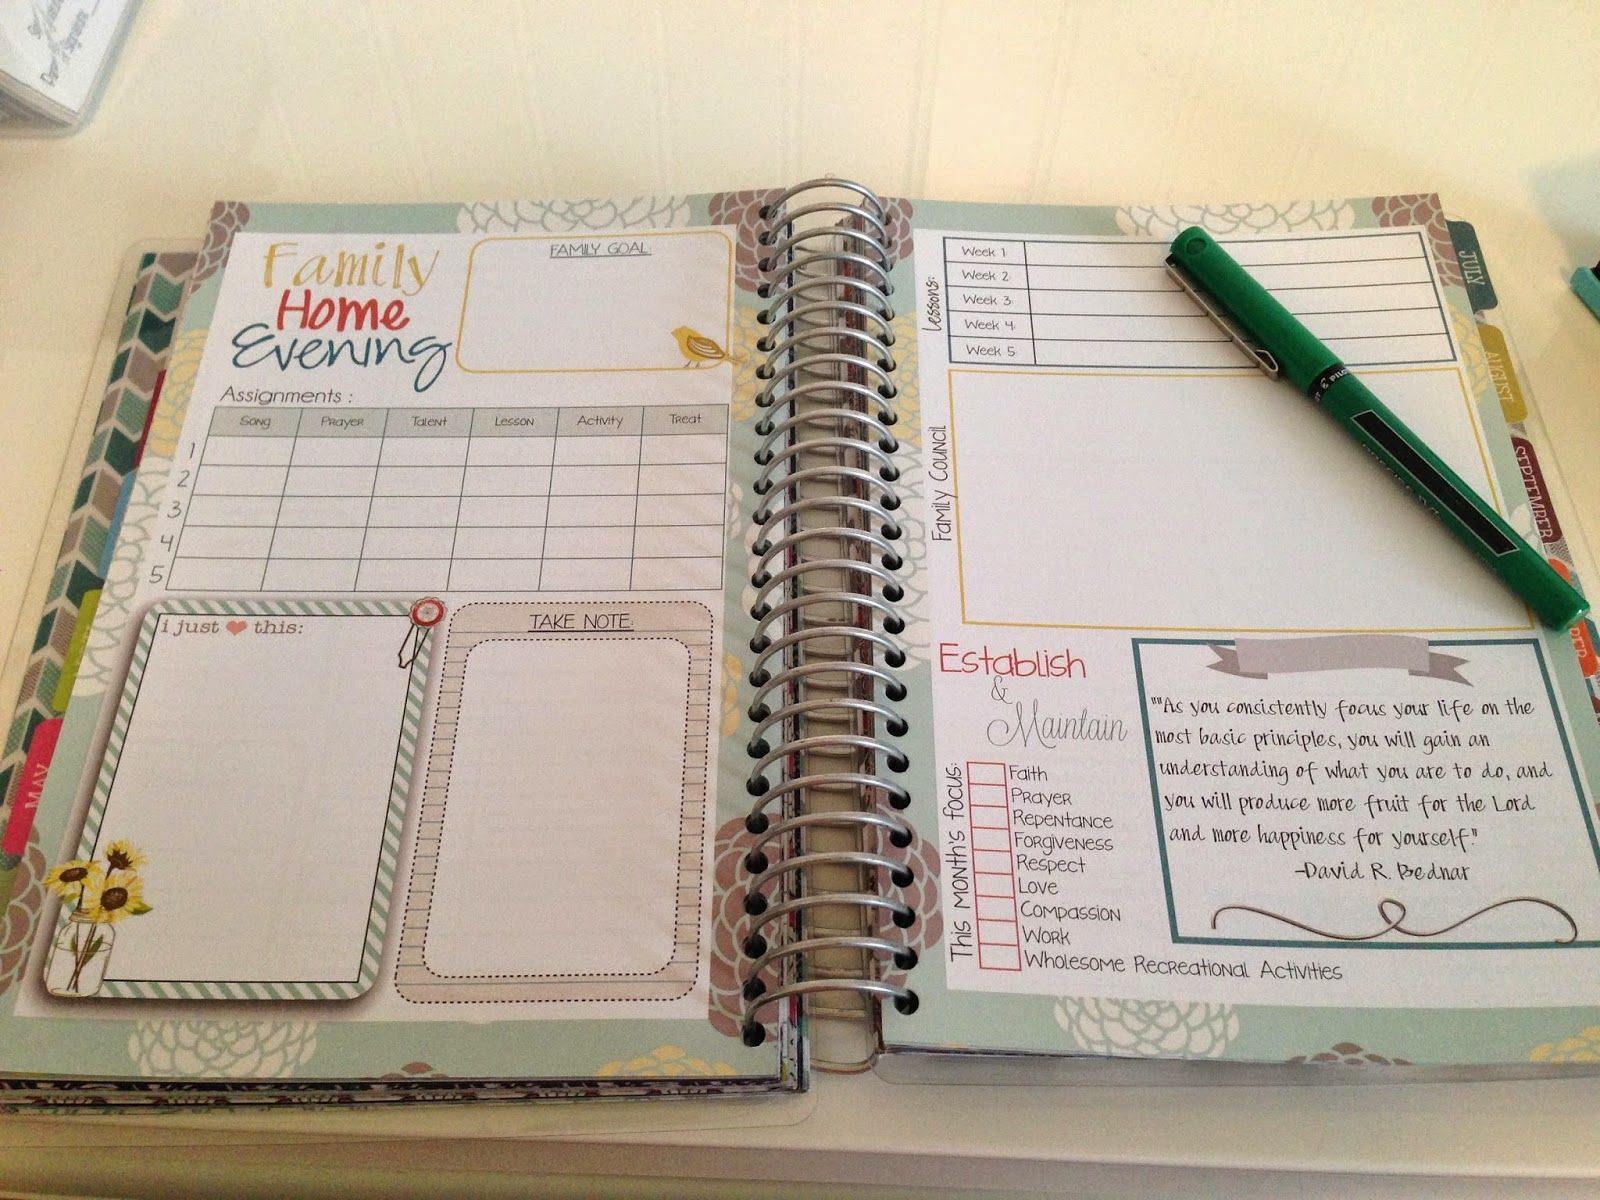 Family Home Evening Planner